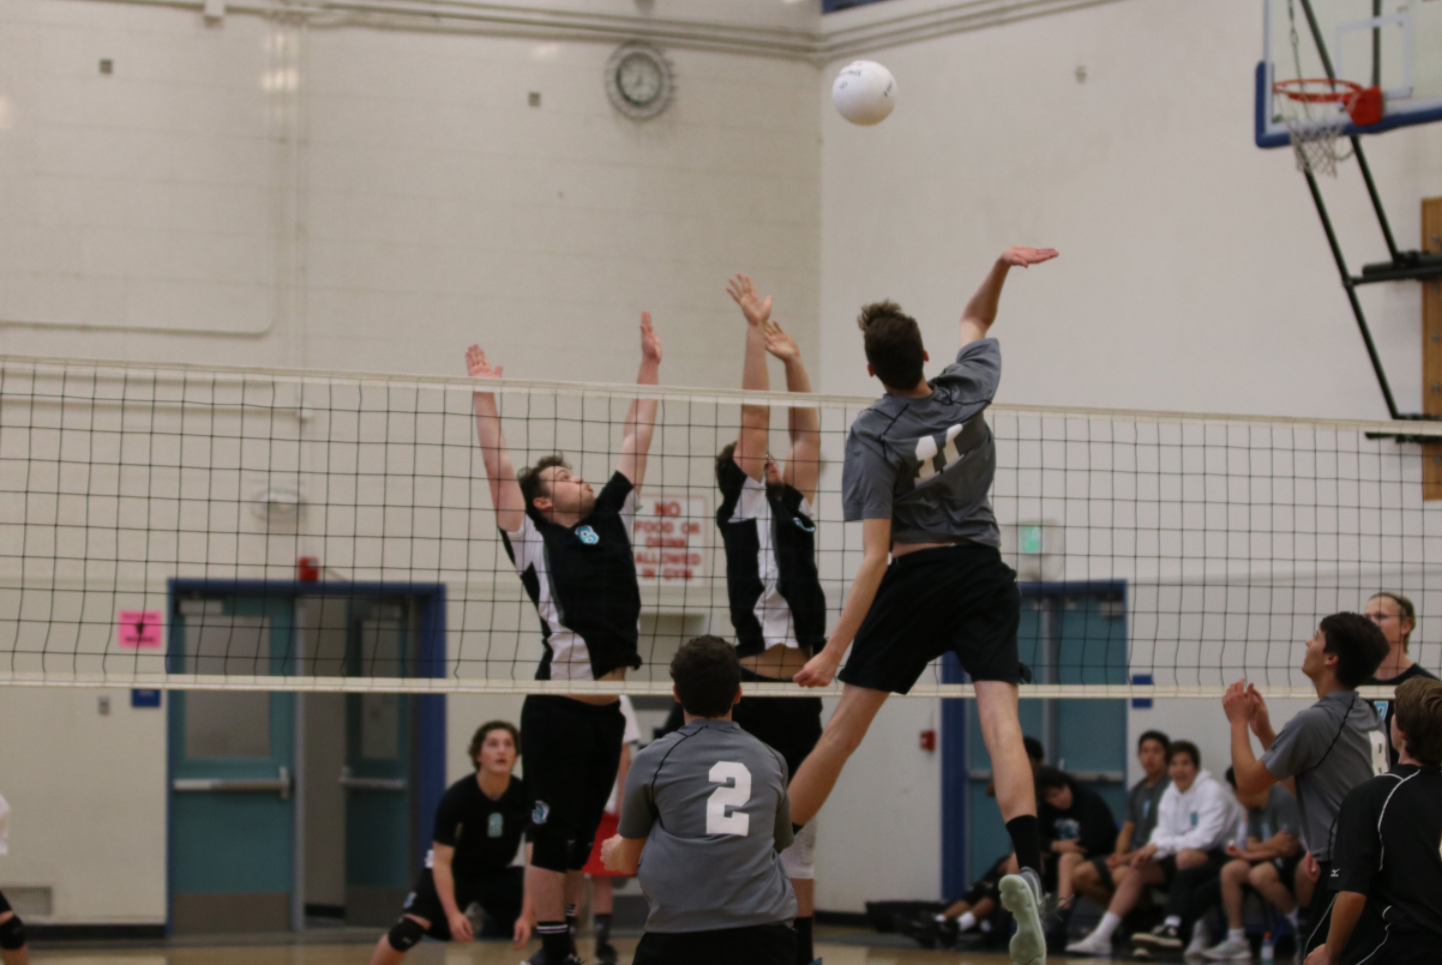 Miles Harvey '19 has a straight shot towards the middle of the court. Credit: Olivia Sanford / The Foothill Dragon Press